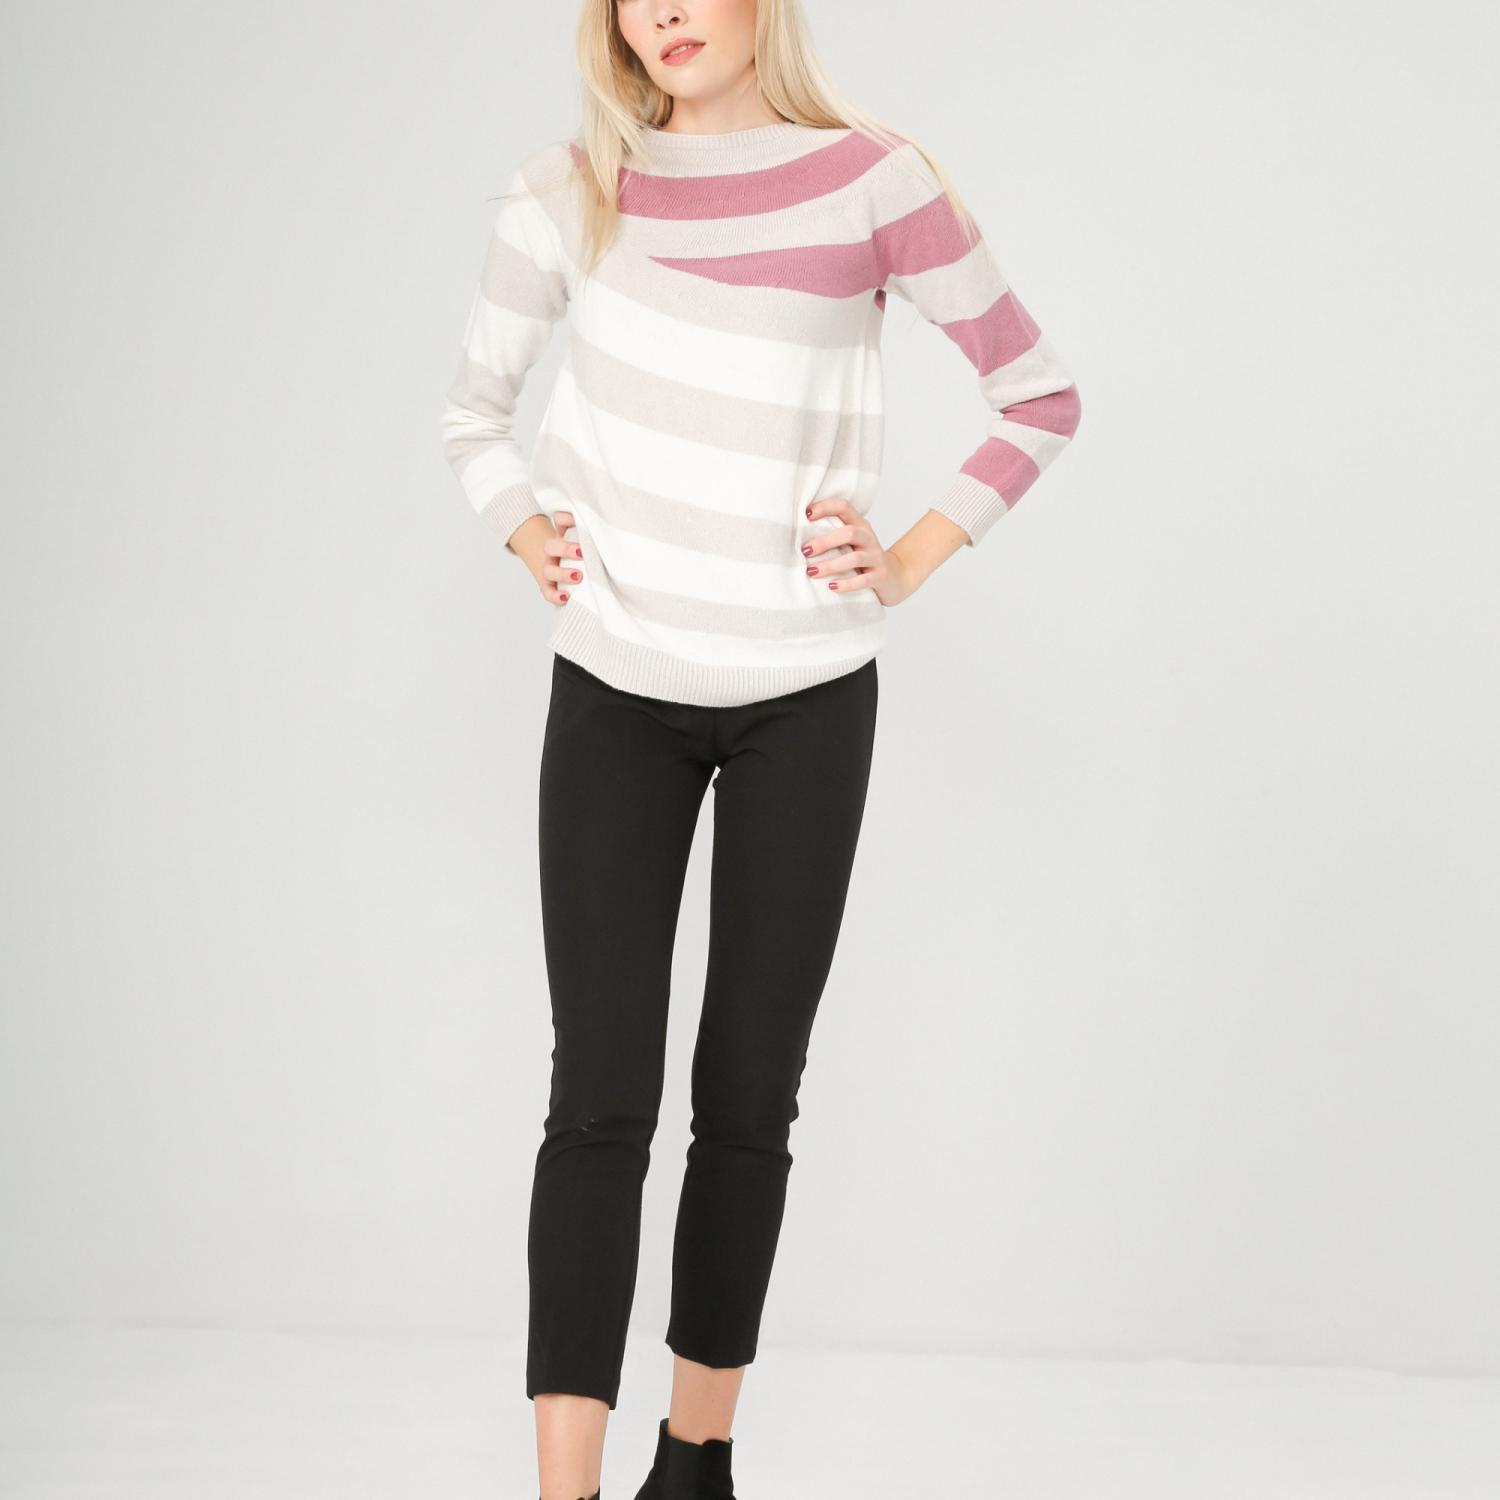 Fontana 2.0 дамски пуловер